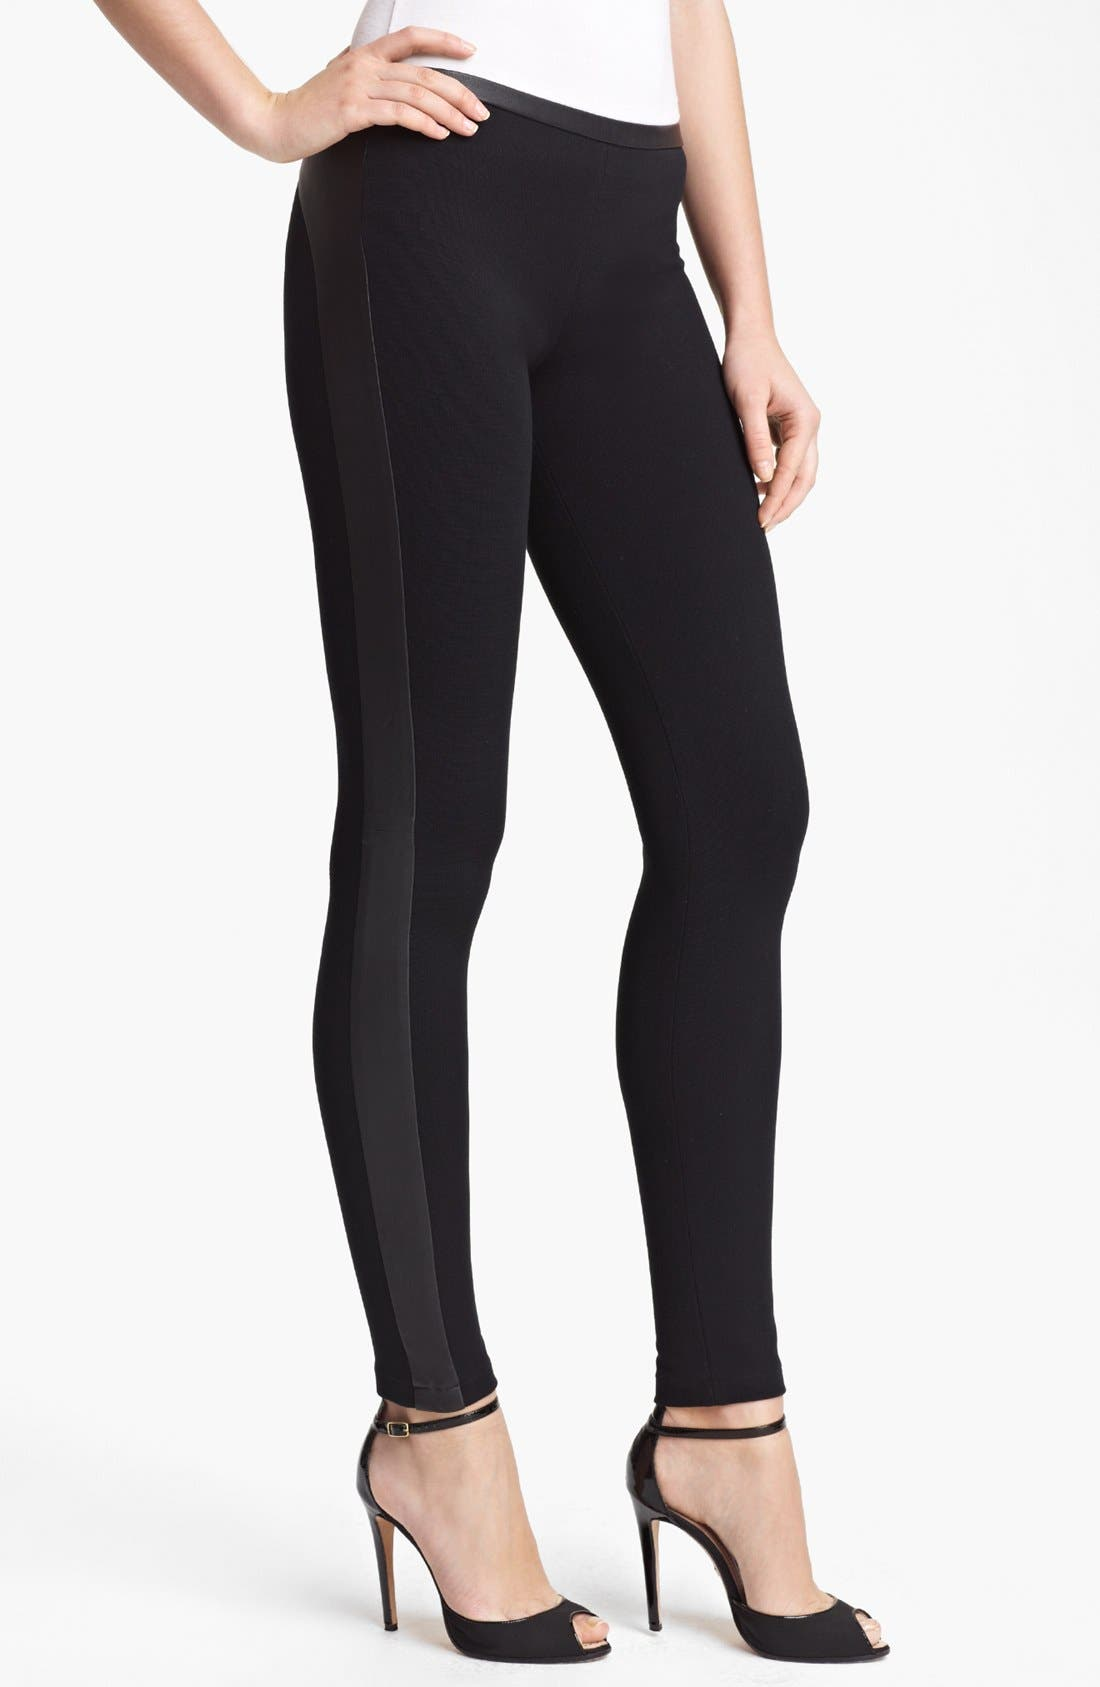 Main Image - Emilio Pucci Leather Trim Punto Milano Leggings